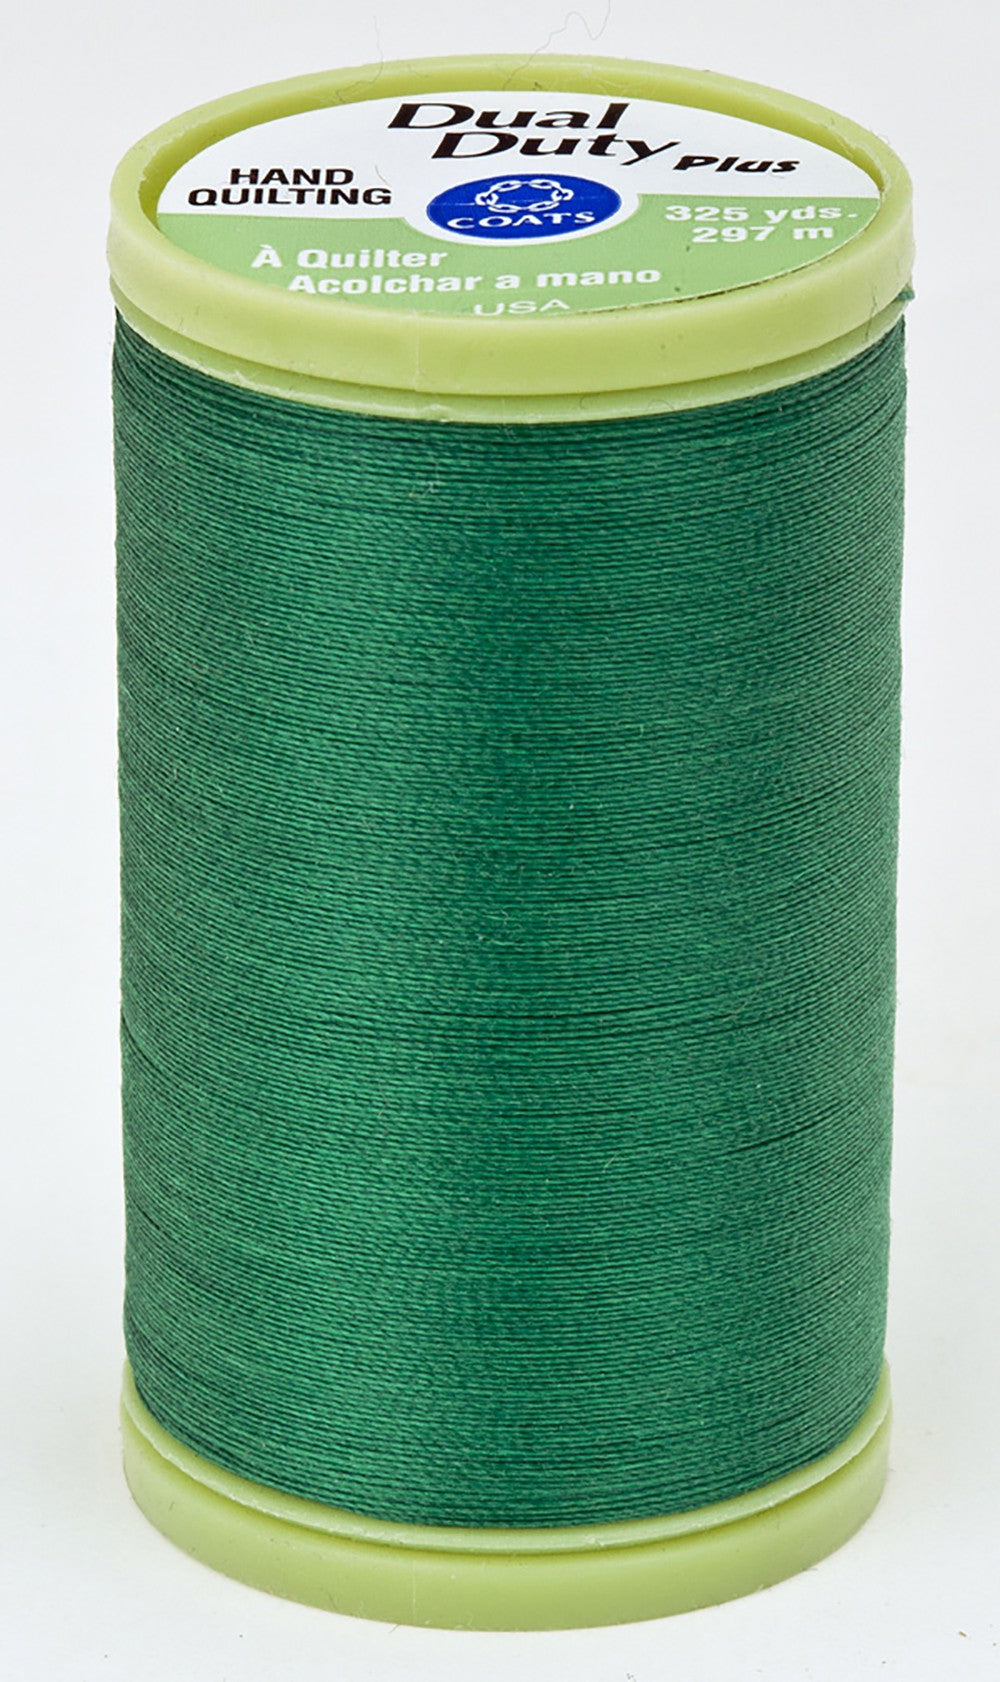 Dual Duty Plus Hand Quilting Thread 325 yds Field Green